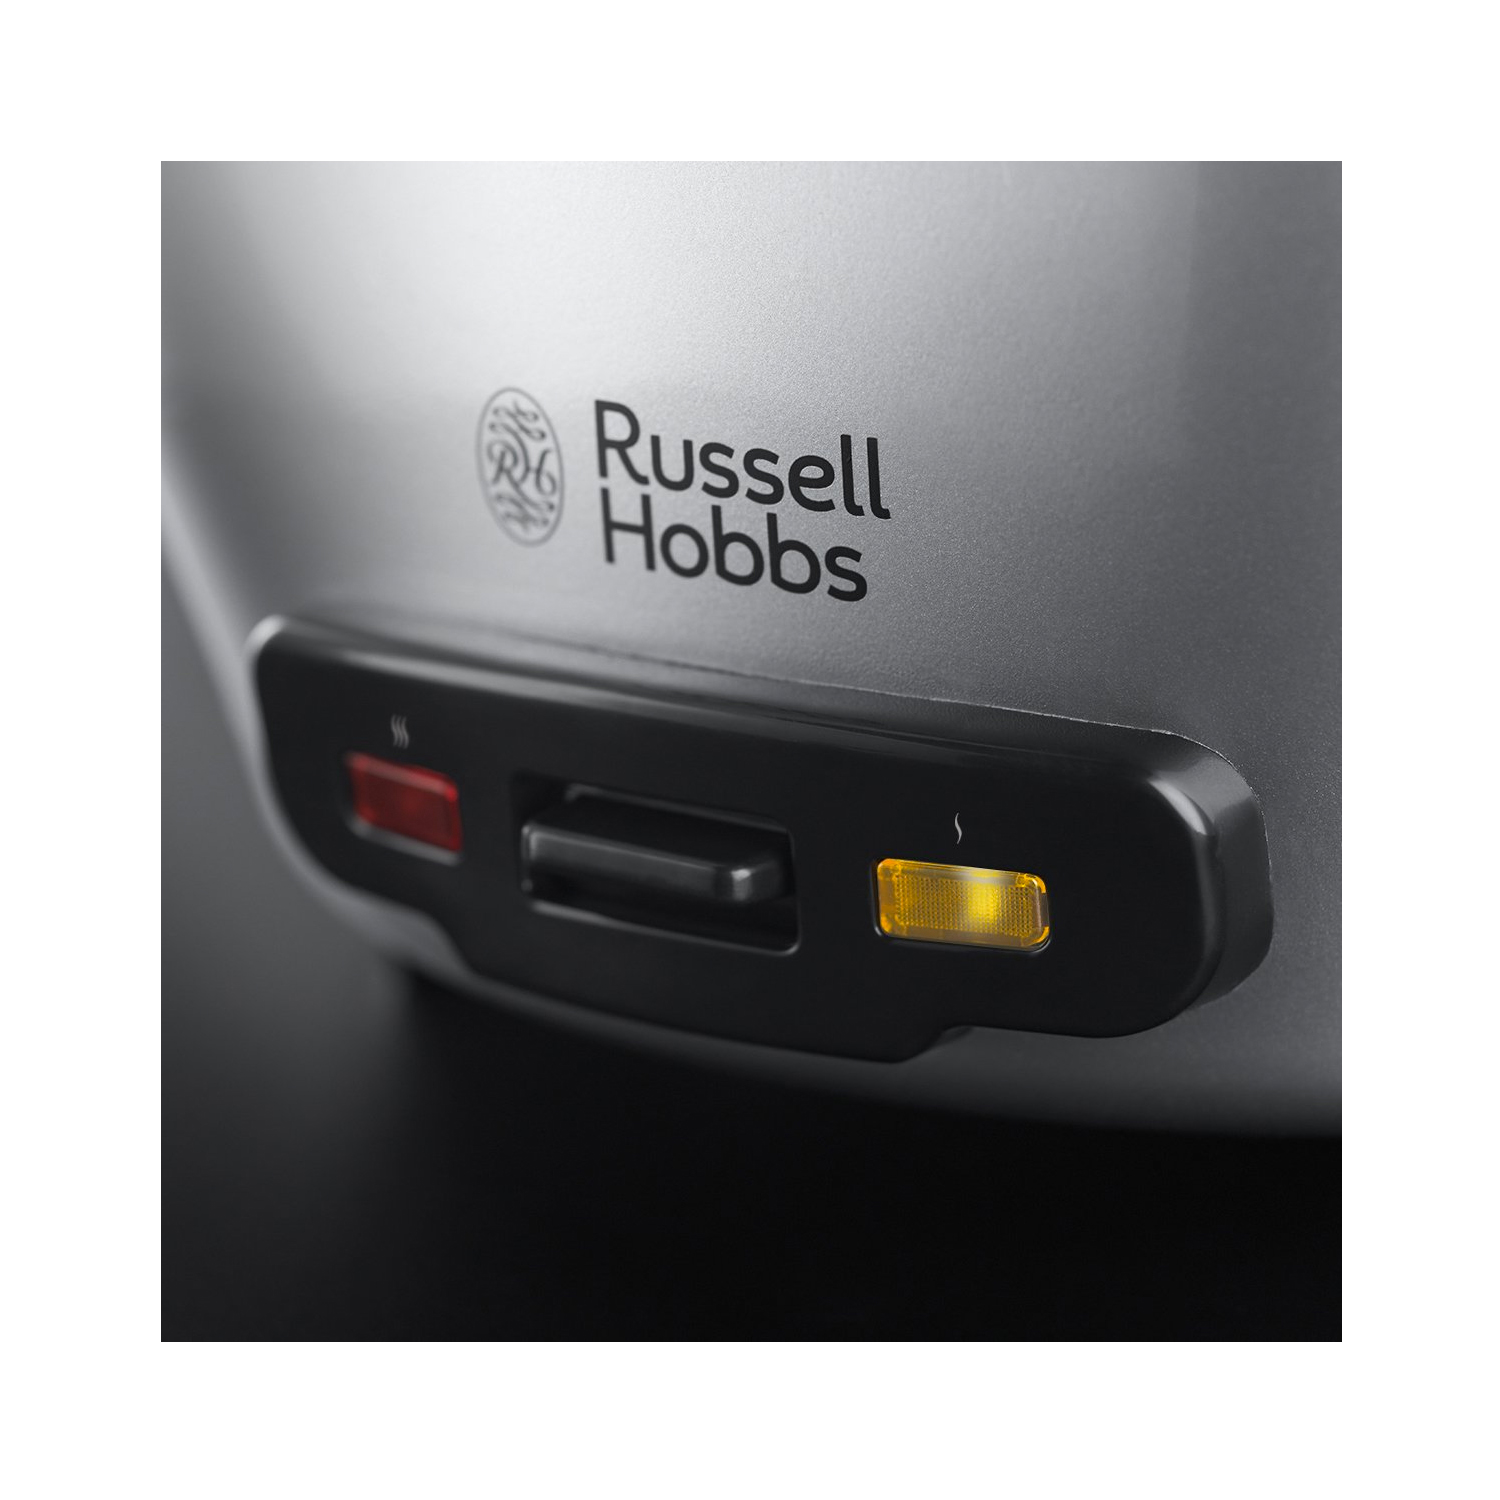 Russell Hobbs 14 Cup MaxiCook Rice Cooker 2